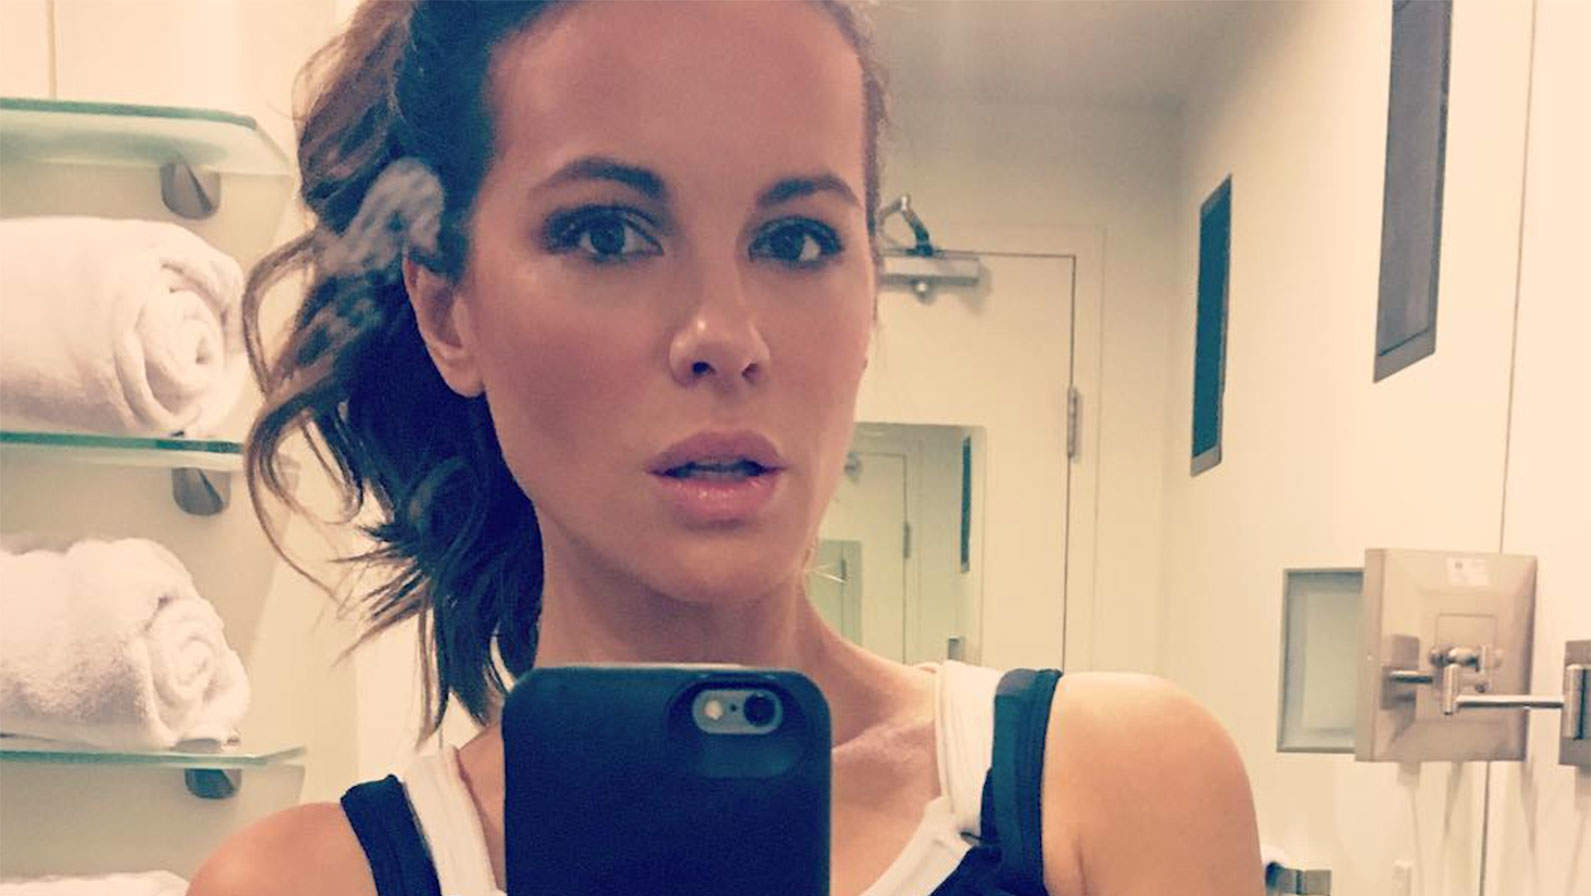 Kate Beckinsale, 45, Shows Off Her Abs in Gym Selfieas She Teases Her Trainer